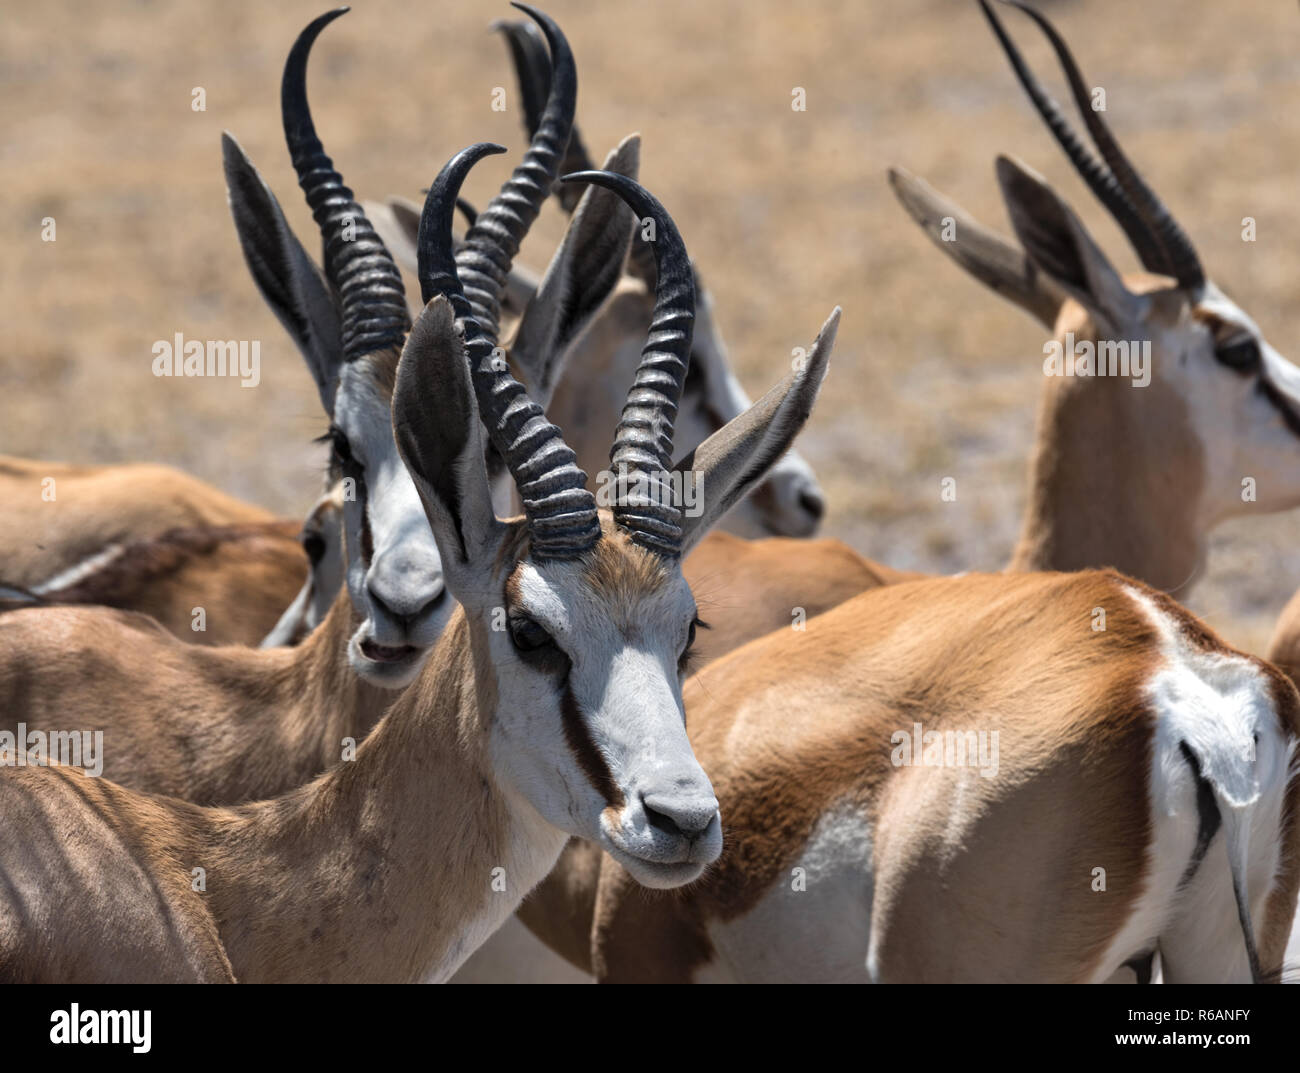 A group of male Impala Antelopes Aepyceros melampus in Nxai Pan National Park, Botswana. - Stock Image